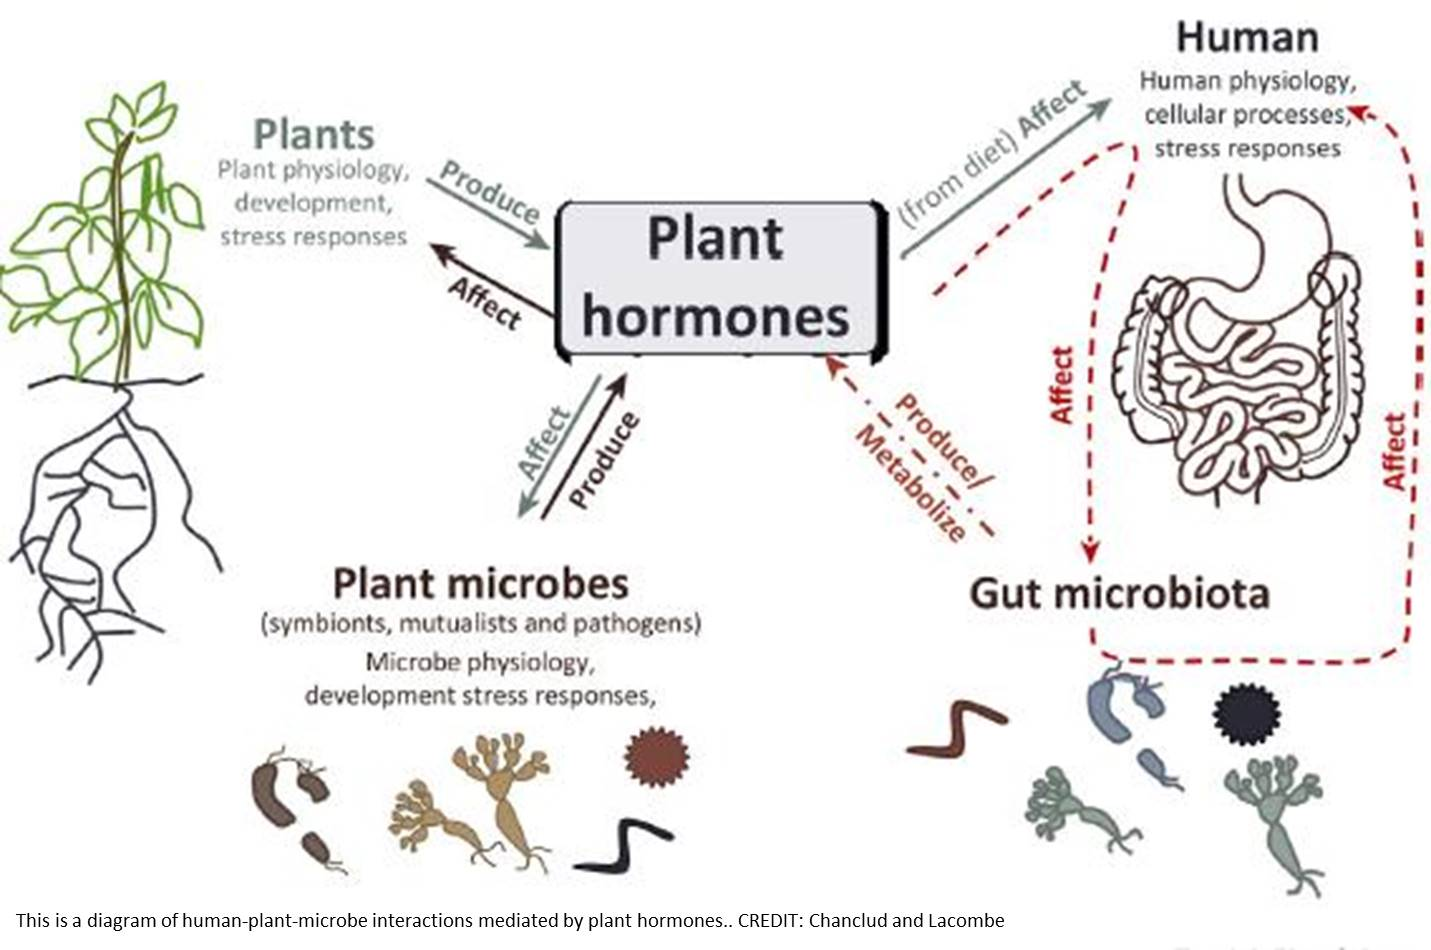 How humans and their gut microbes may respond to plant hormones